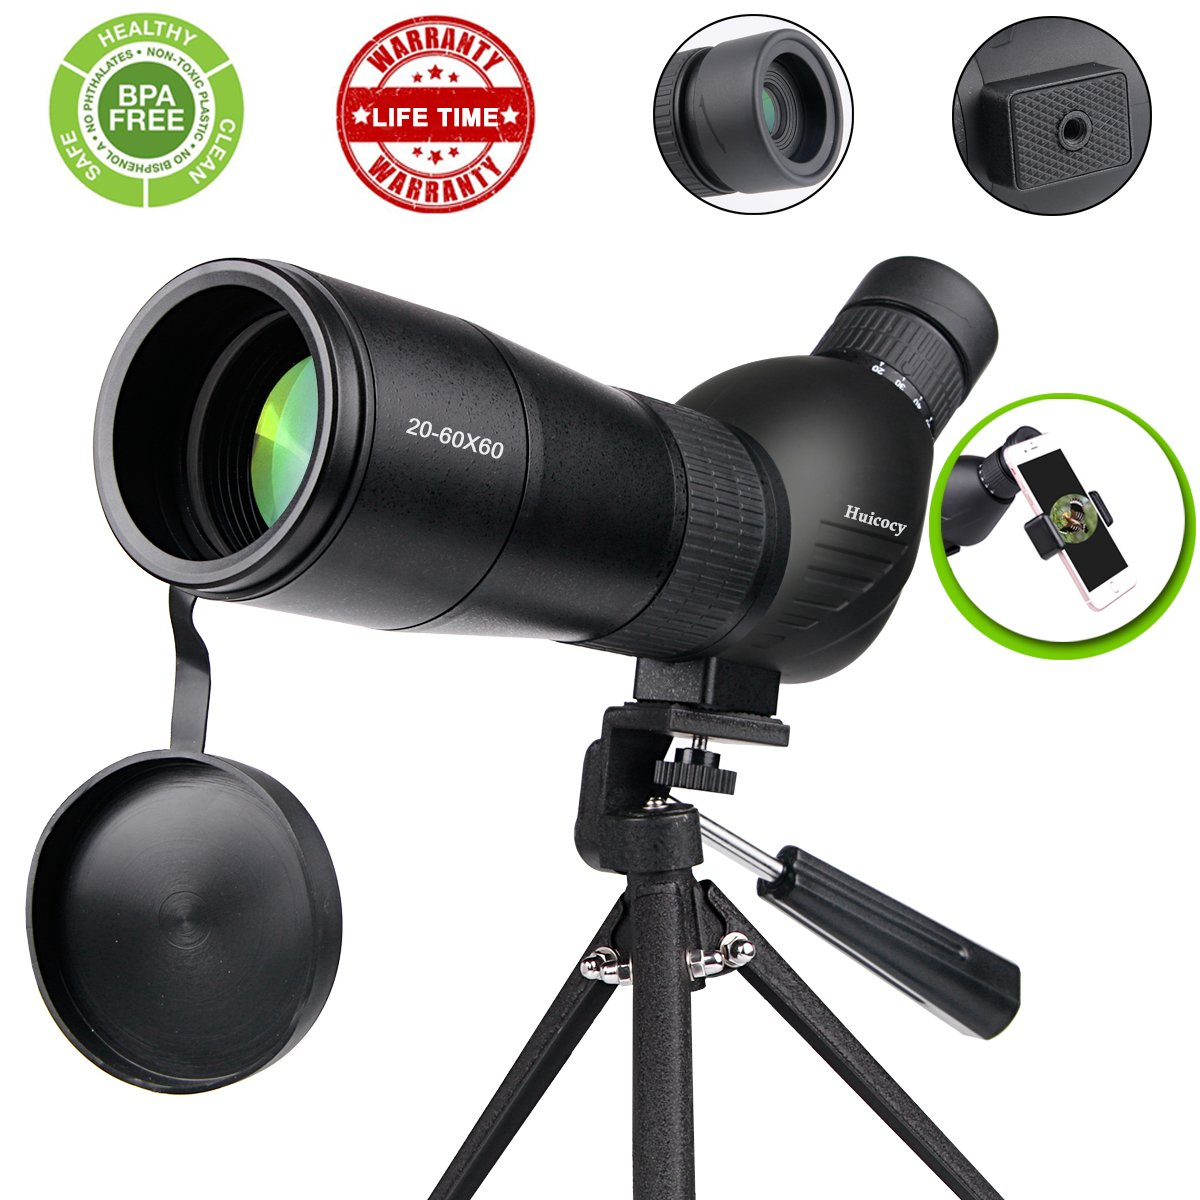 Spotting Scope,Huicocy 20-60x60mm Zoom 39-19m/1000m Fully Multi Coated Optical Lens Fogproof and Movably Eyepiece Rubber Design Telescope with Quick Smartphone Mount Kit and Tabletop Tripod for Target by HUICOCY